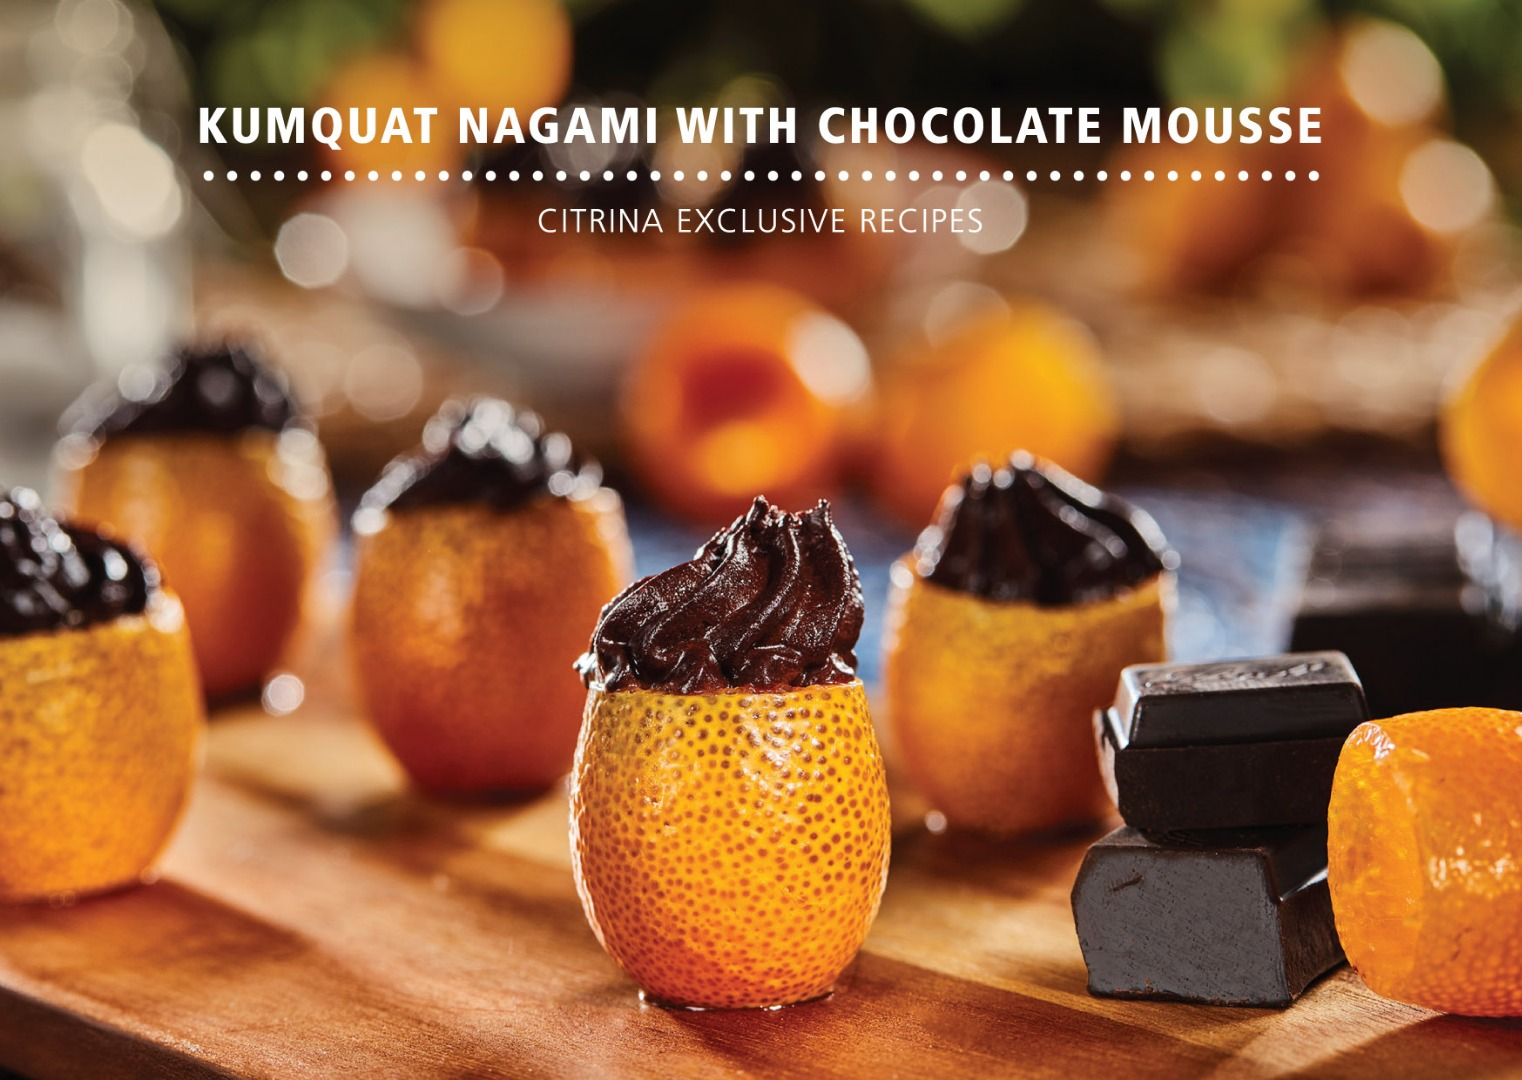 Kumquat - Ophelia Kumquat Nagami com mousse de chocolate